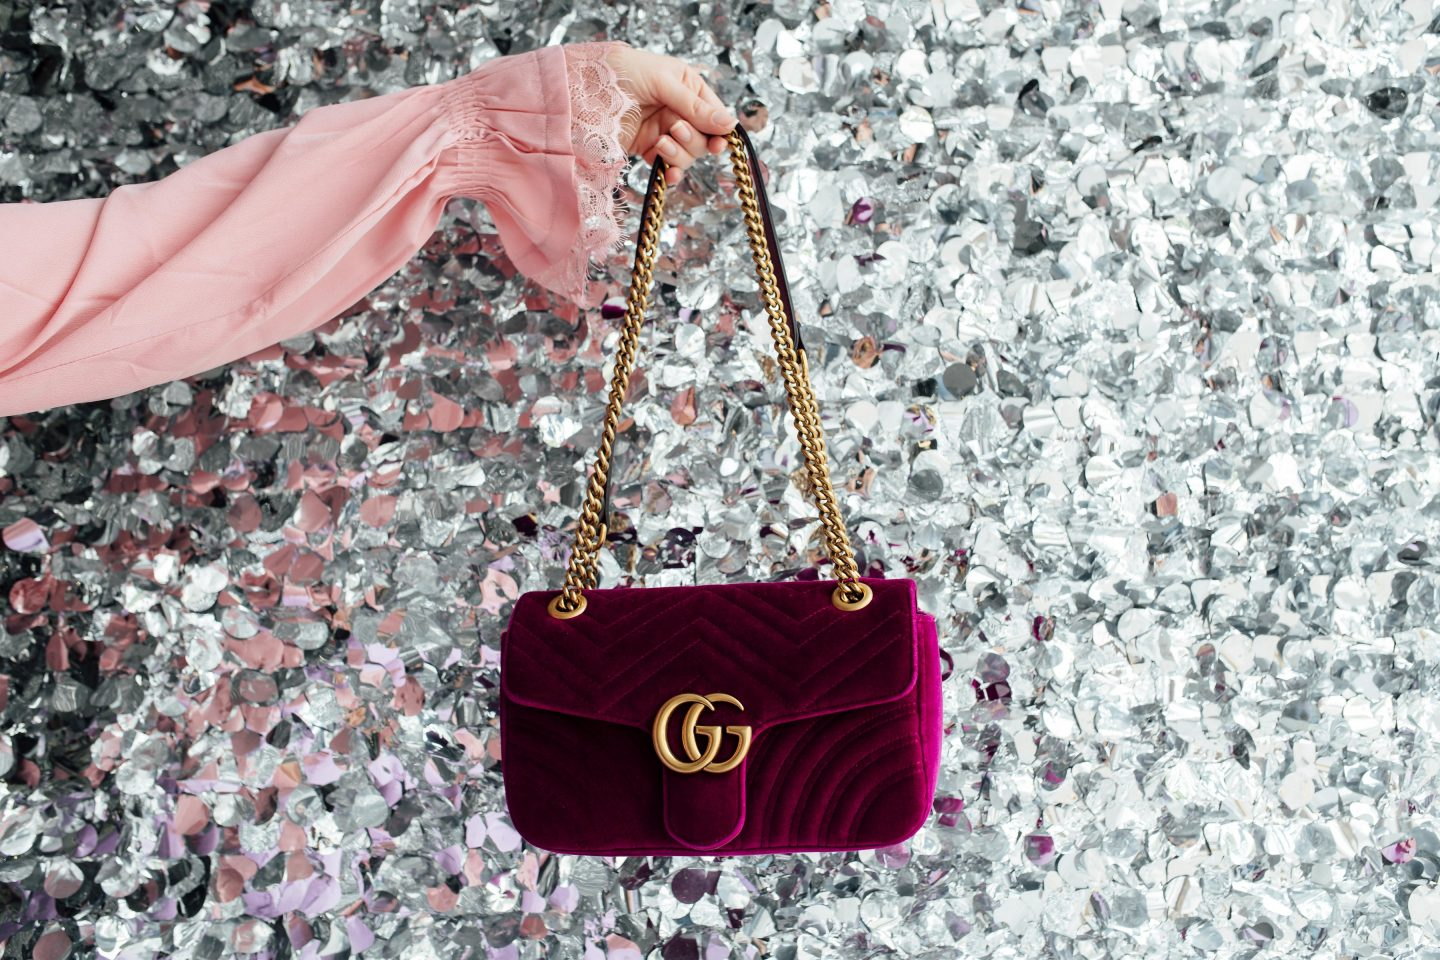 5 SIGNS YOU NEED GLAMOUR IN YOUR LIFE, Asos pink top, ASOS, Gucci Marmontsmall velvet, Gucci marmont small bag, Gucci marmont velvet bag